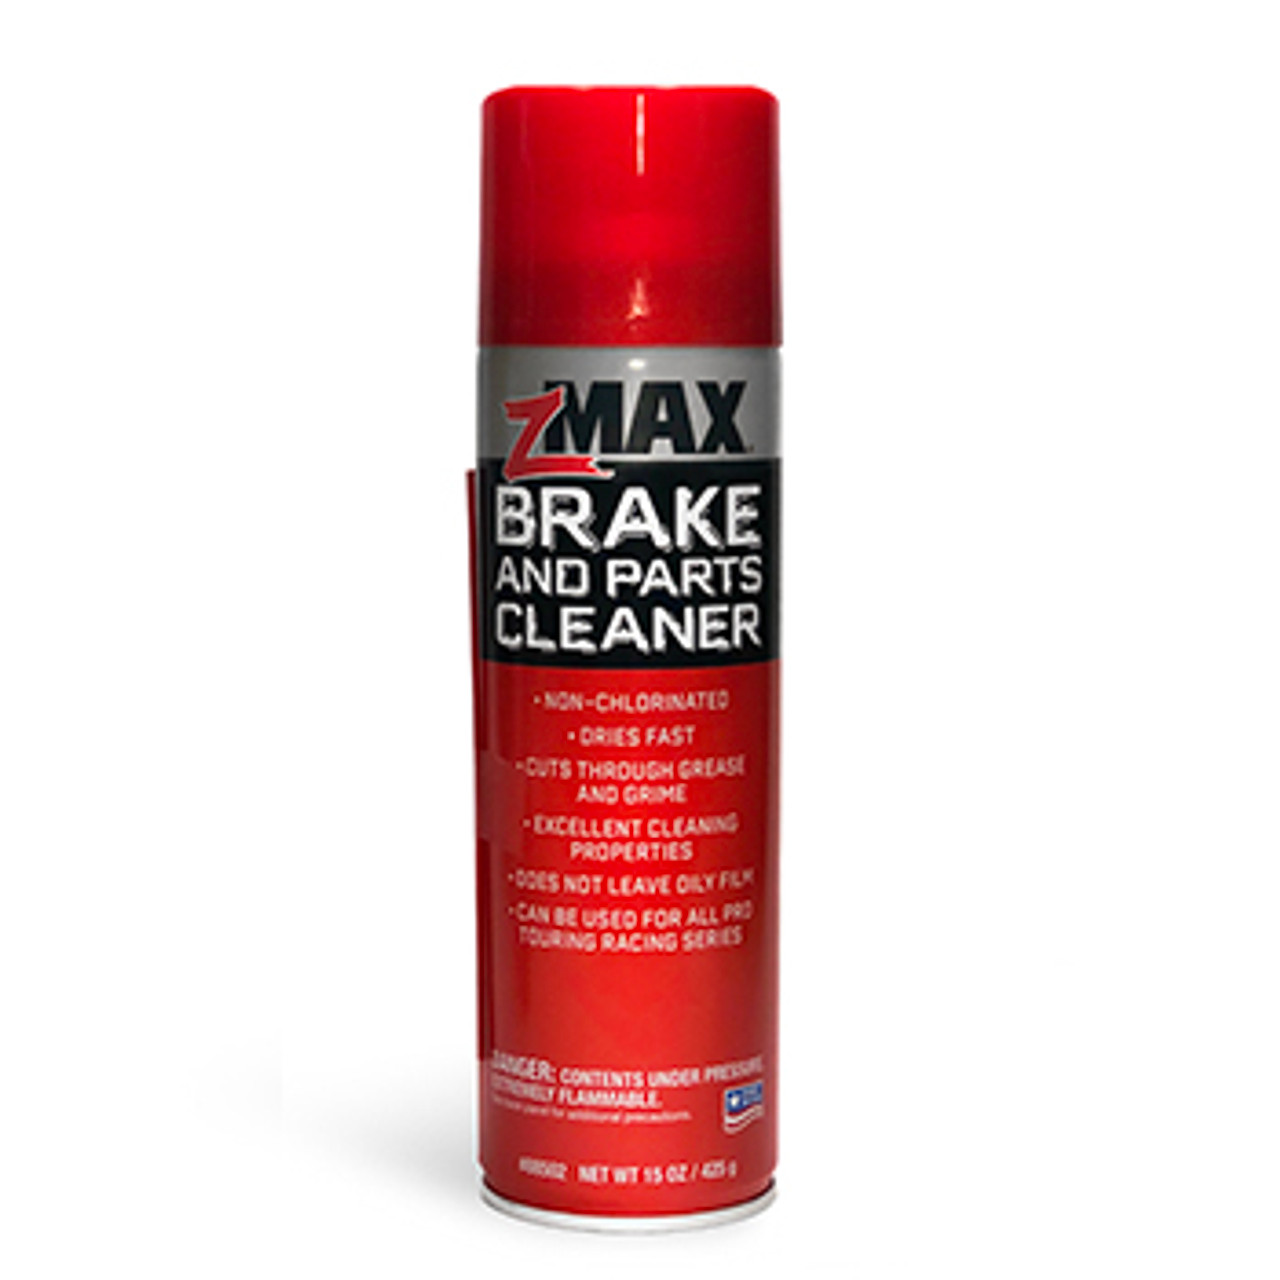 zMAX Brake and Parts Cleaner (same as Driven Brake Cleaner)